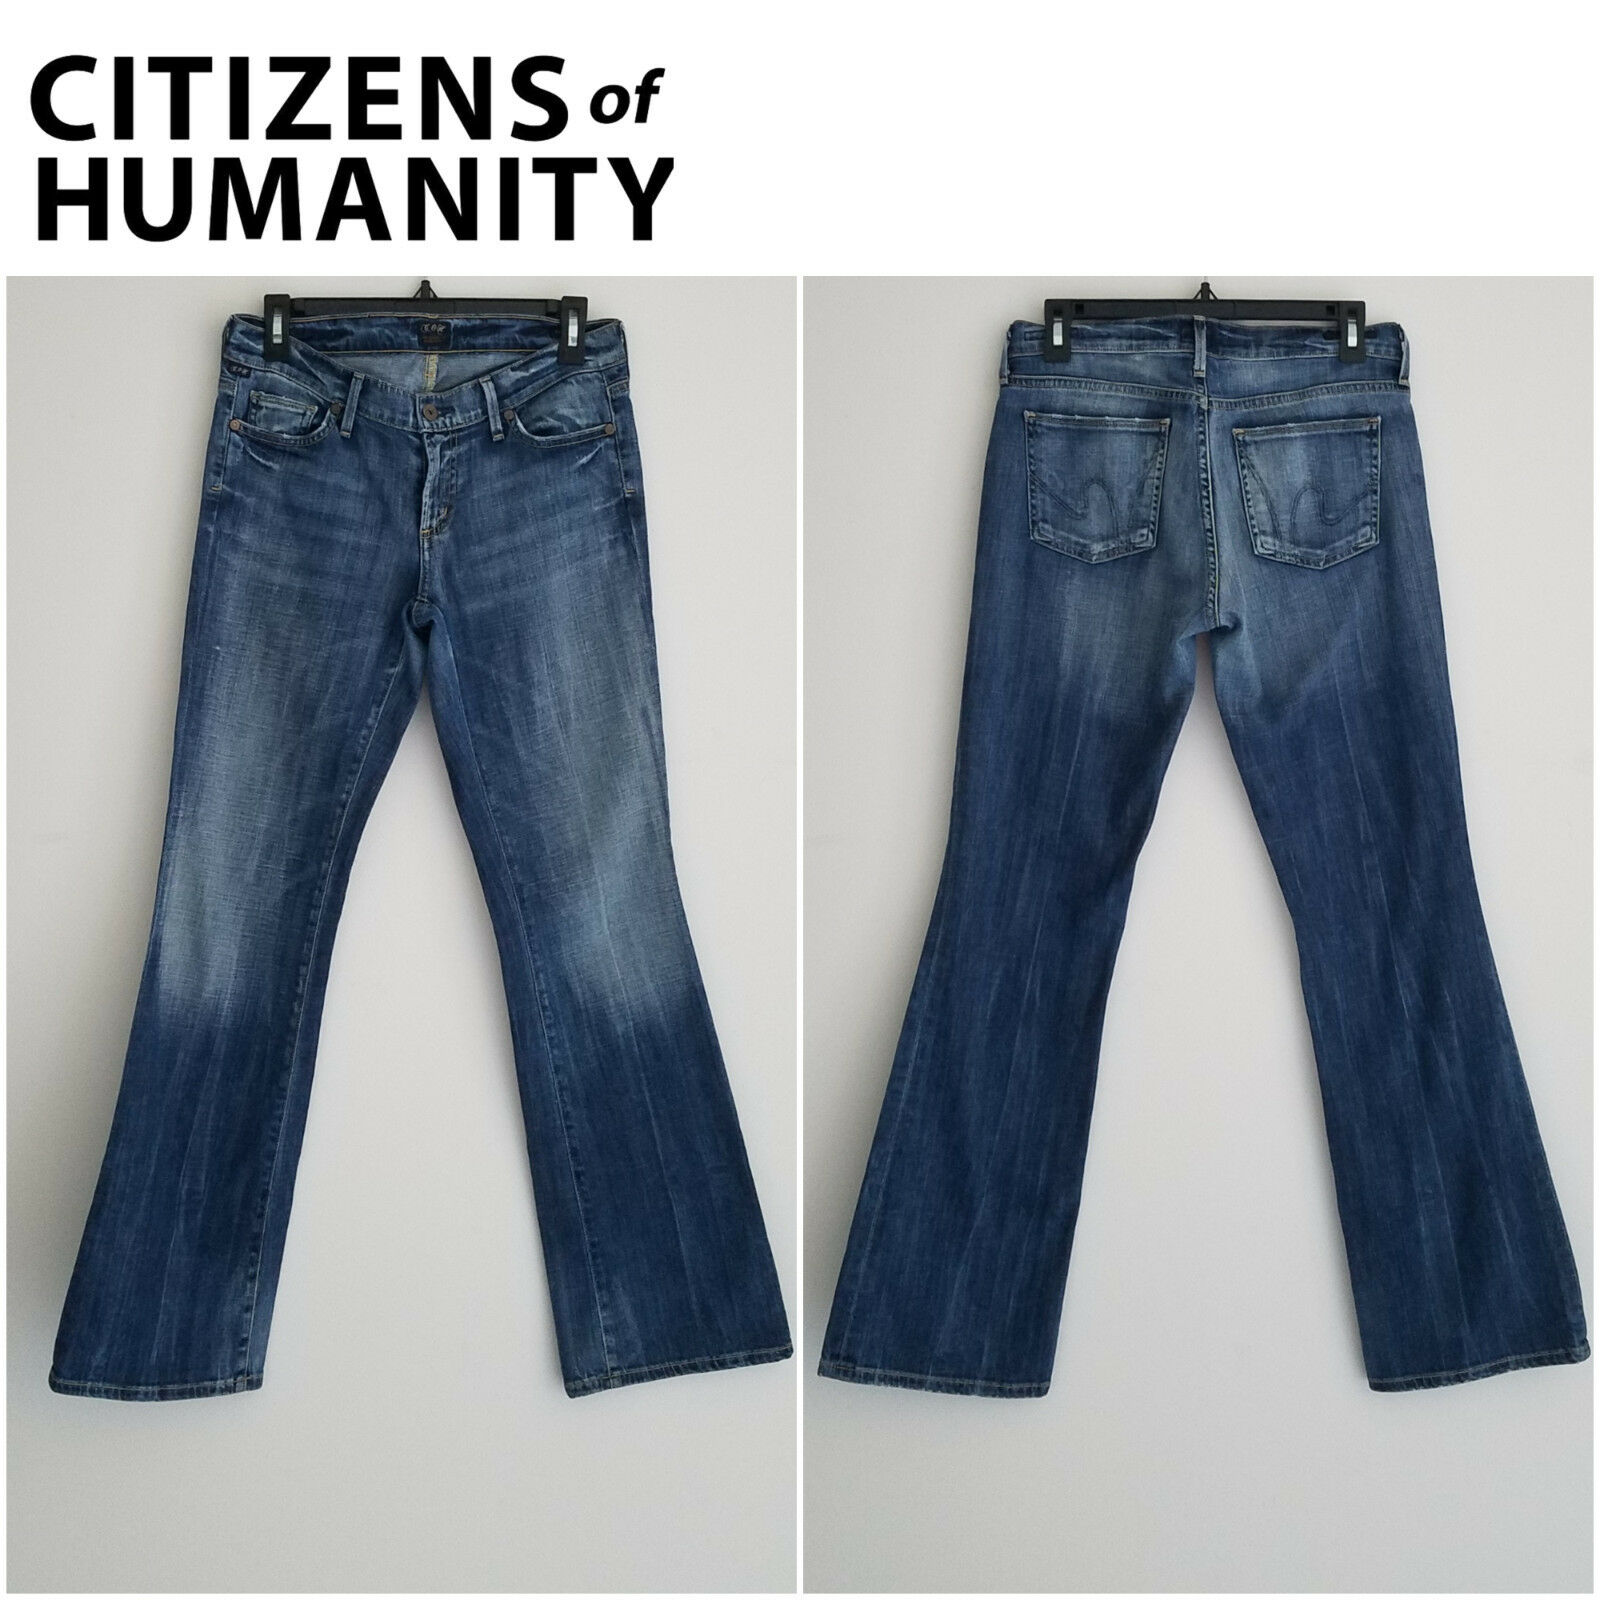 Citizens of Humanity Womens bluee Jeans Sz 28 Dita Petite 1275-145 (31x31) (A)